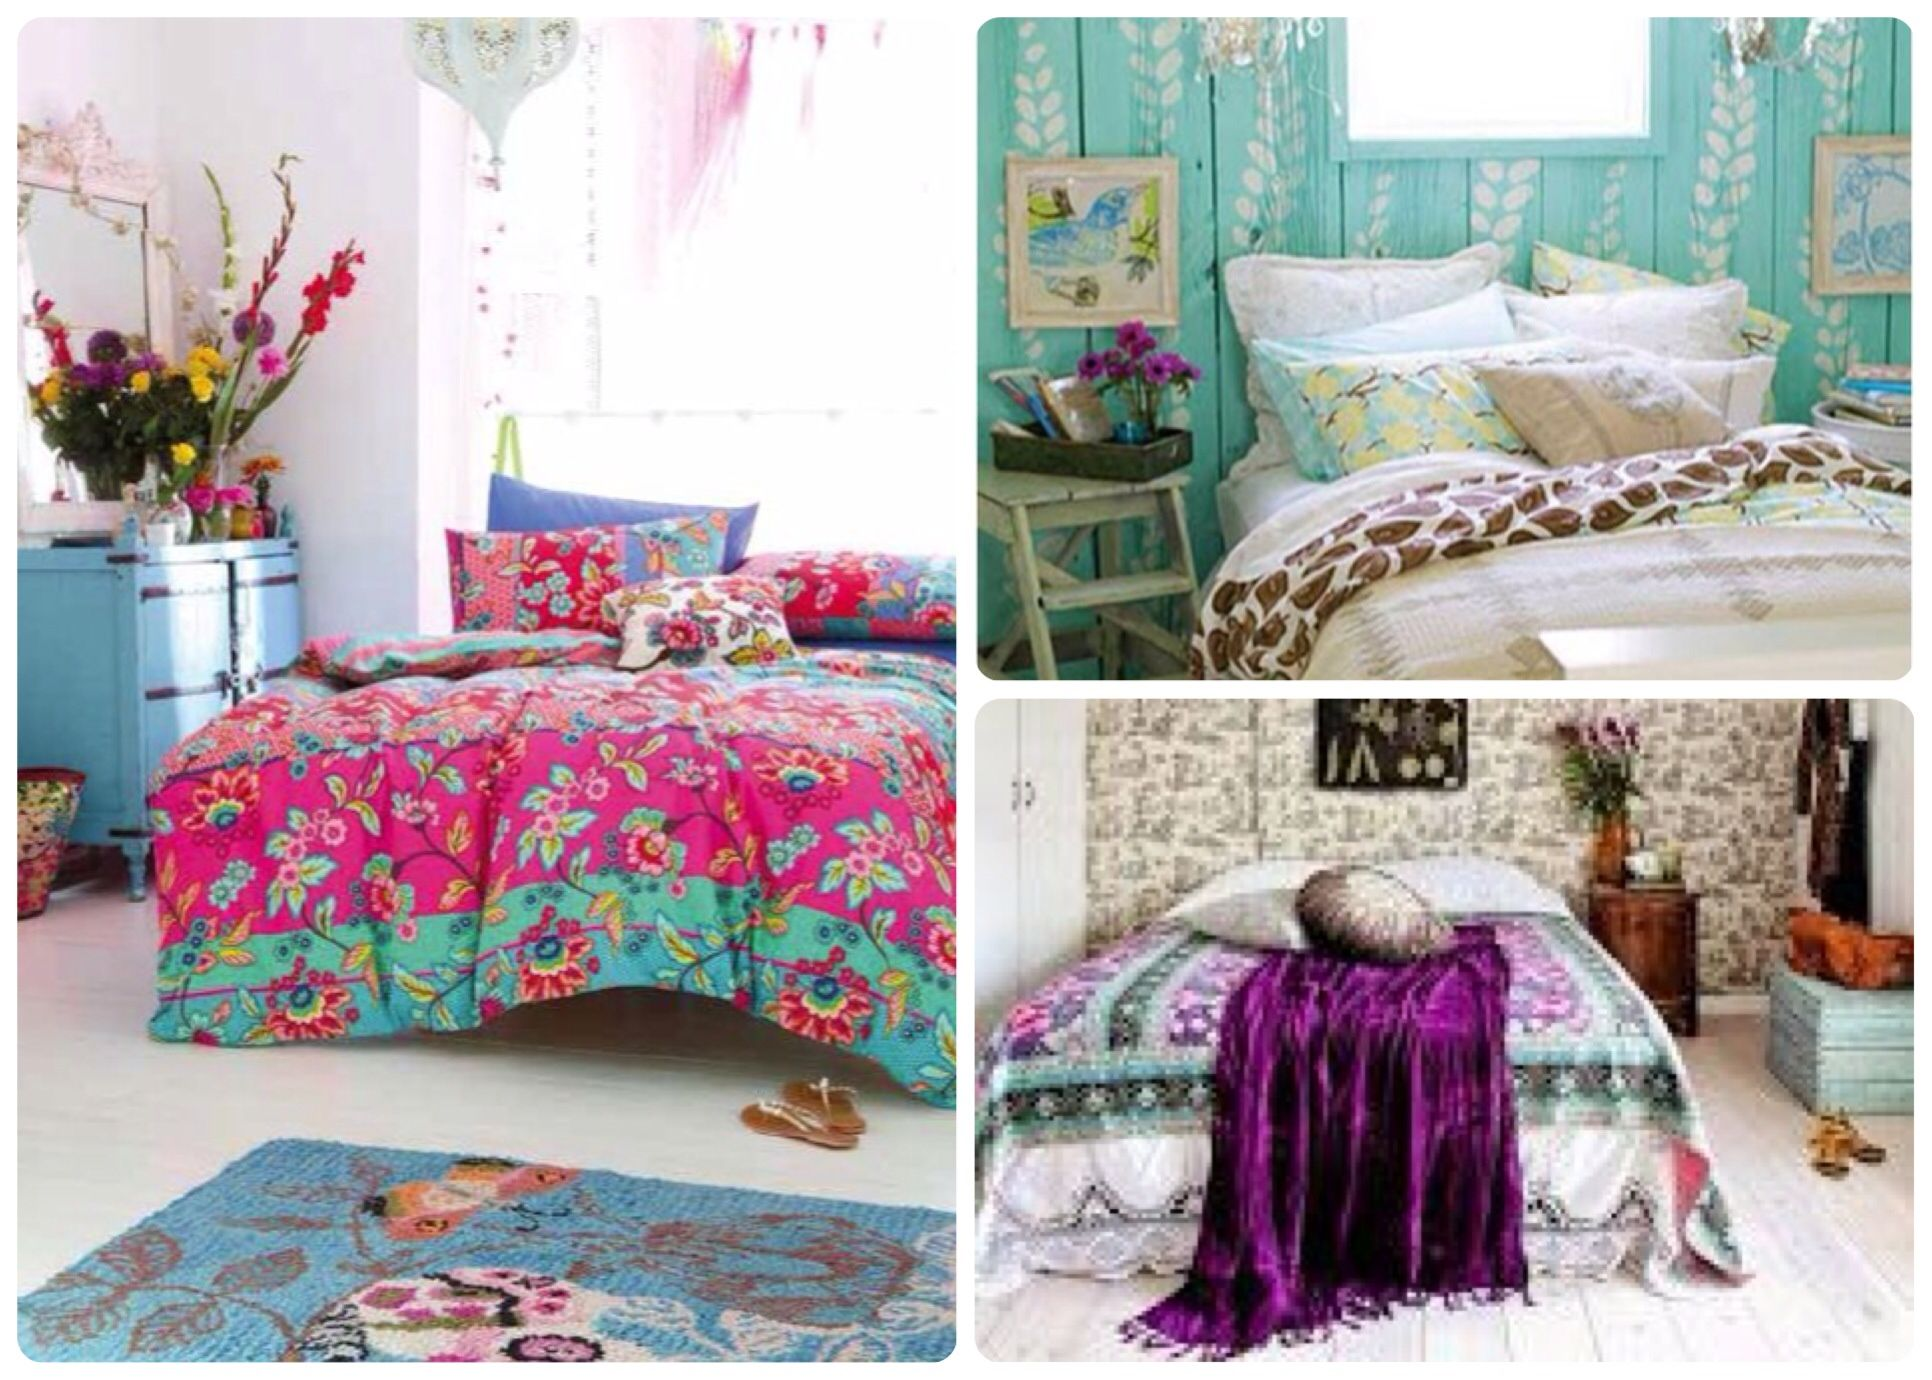 Boho Chic Vintage Bedroom